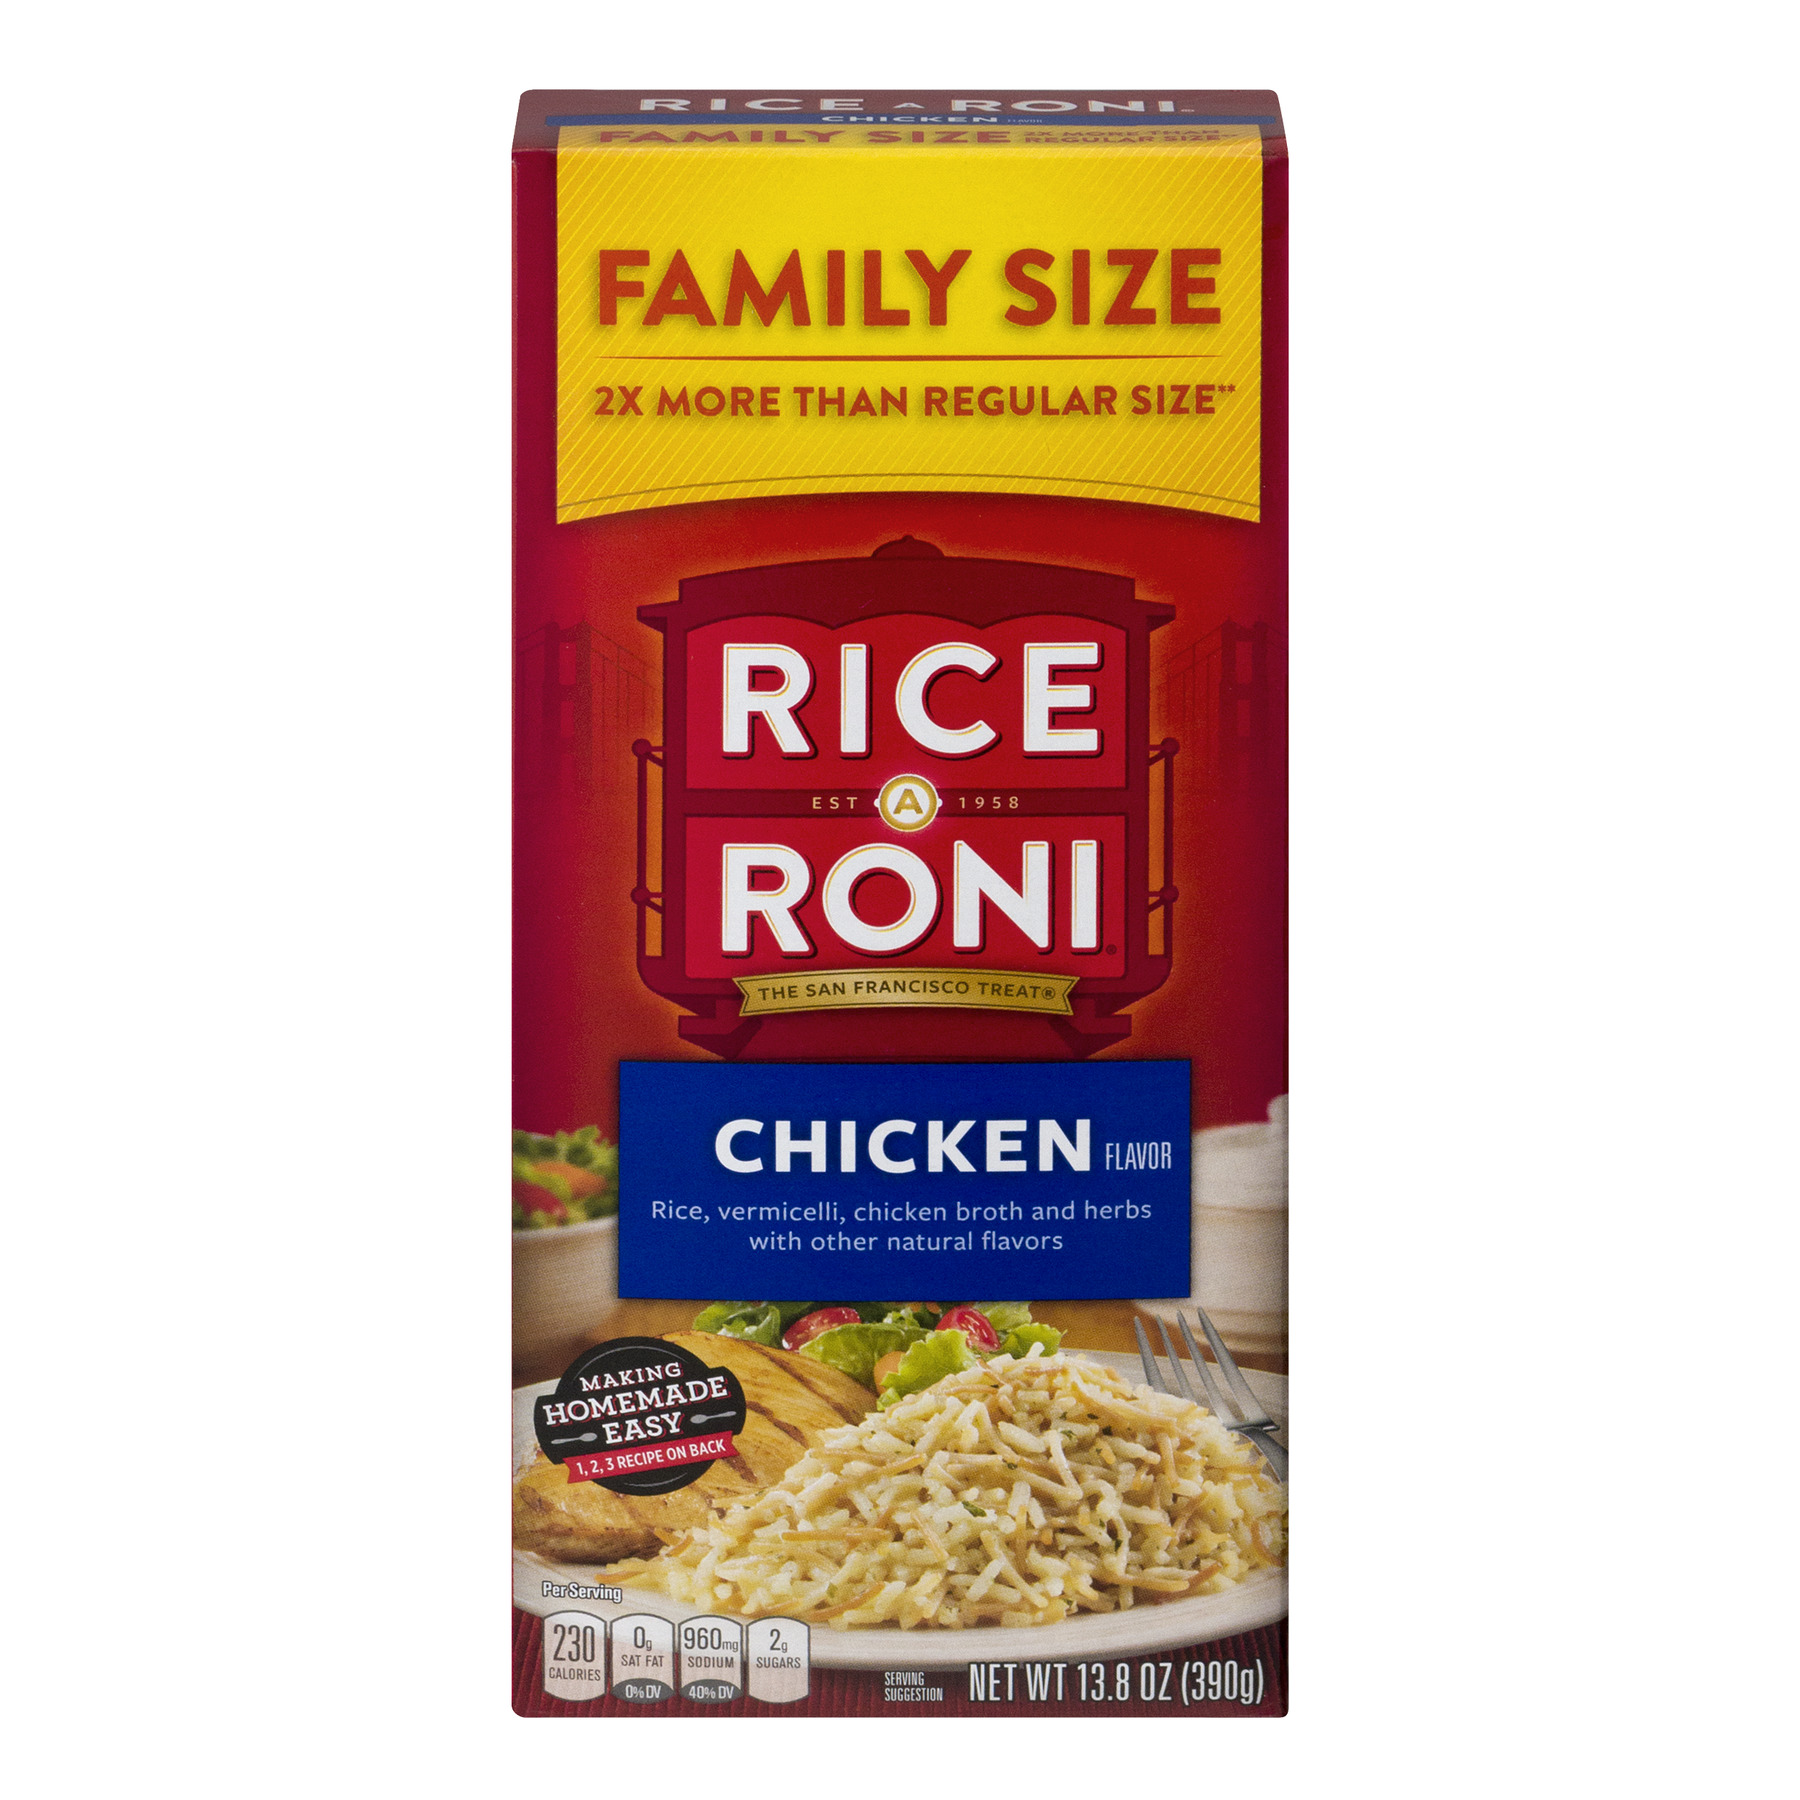 Rice-A-Roni Rice & Vermicelli Mix, Chicken, 13.8 oz Box